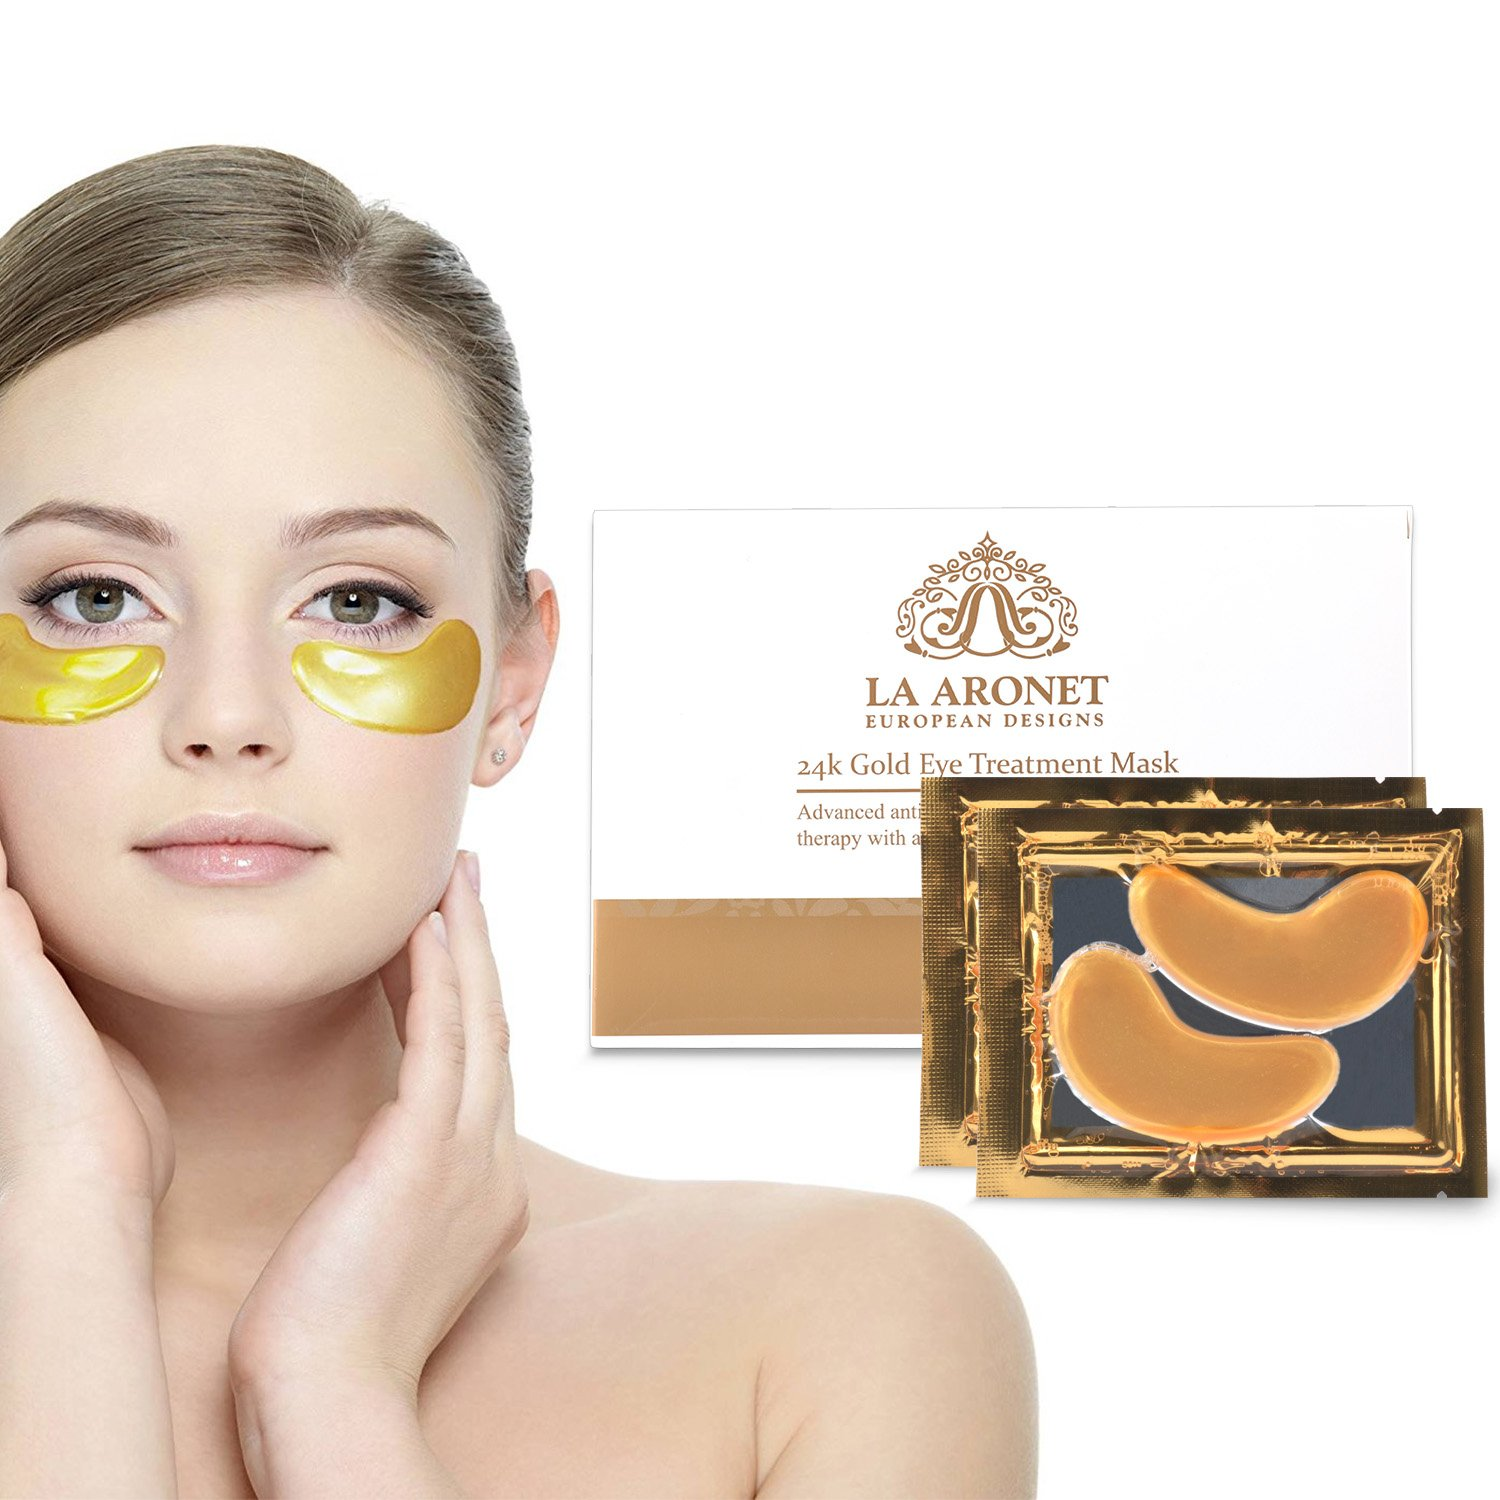 LA ARONET 24K Gold Eye Treatment Masks - (Pack of 20 Pairs) with Anti-Aging Wrinkle Reduction Collagen and Nutrients to Reduce Dark Circles, Bags, and Eye Puffiness, 5 EXTRA BONUS PAIRS included by LA ARONET (Image #5)